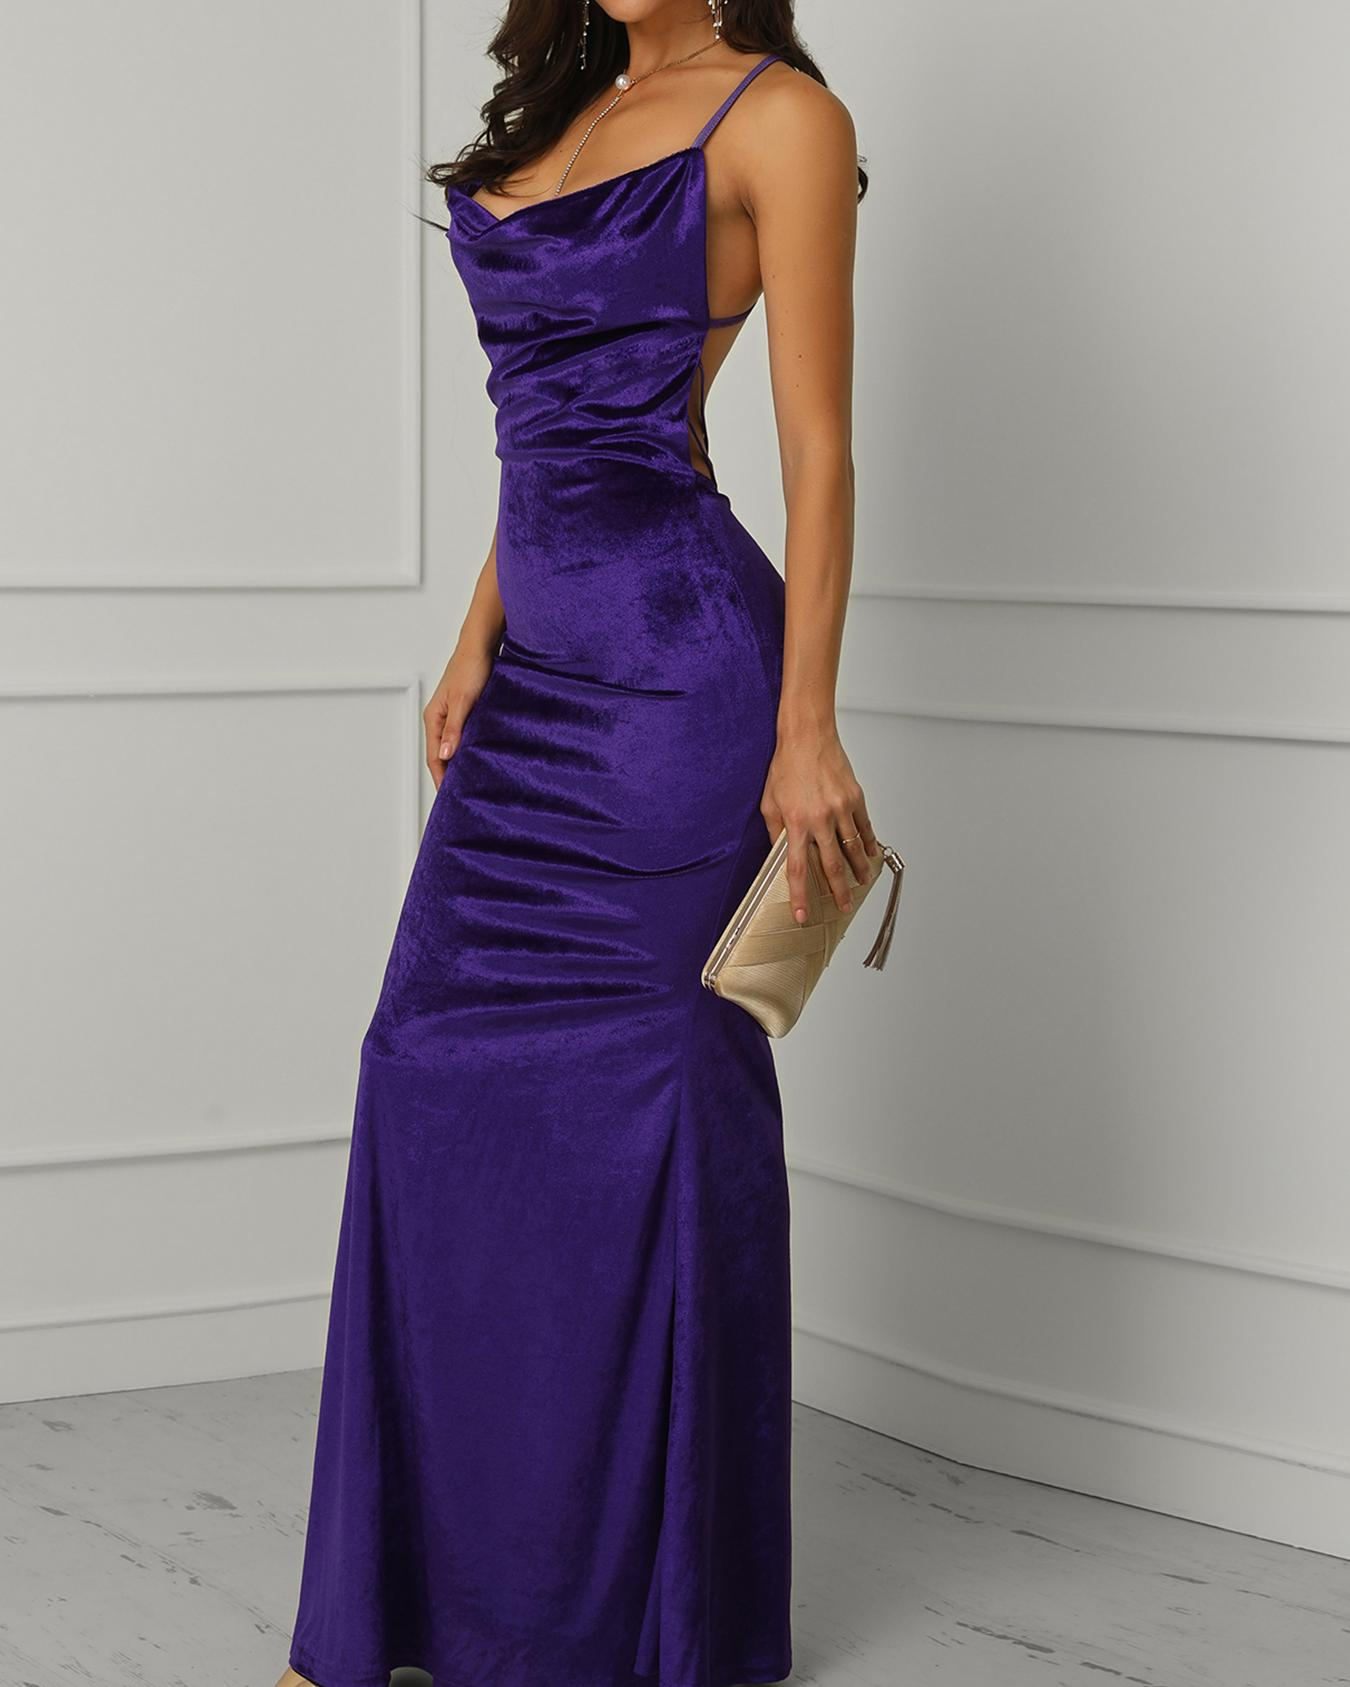 joyshoetique / Spaghetti Strap Crisscross Back Evening Dress